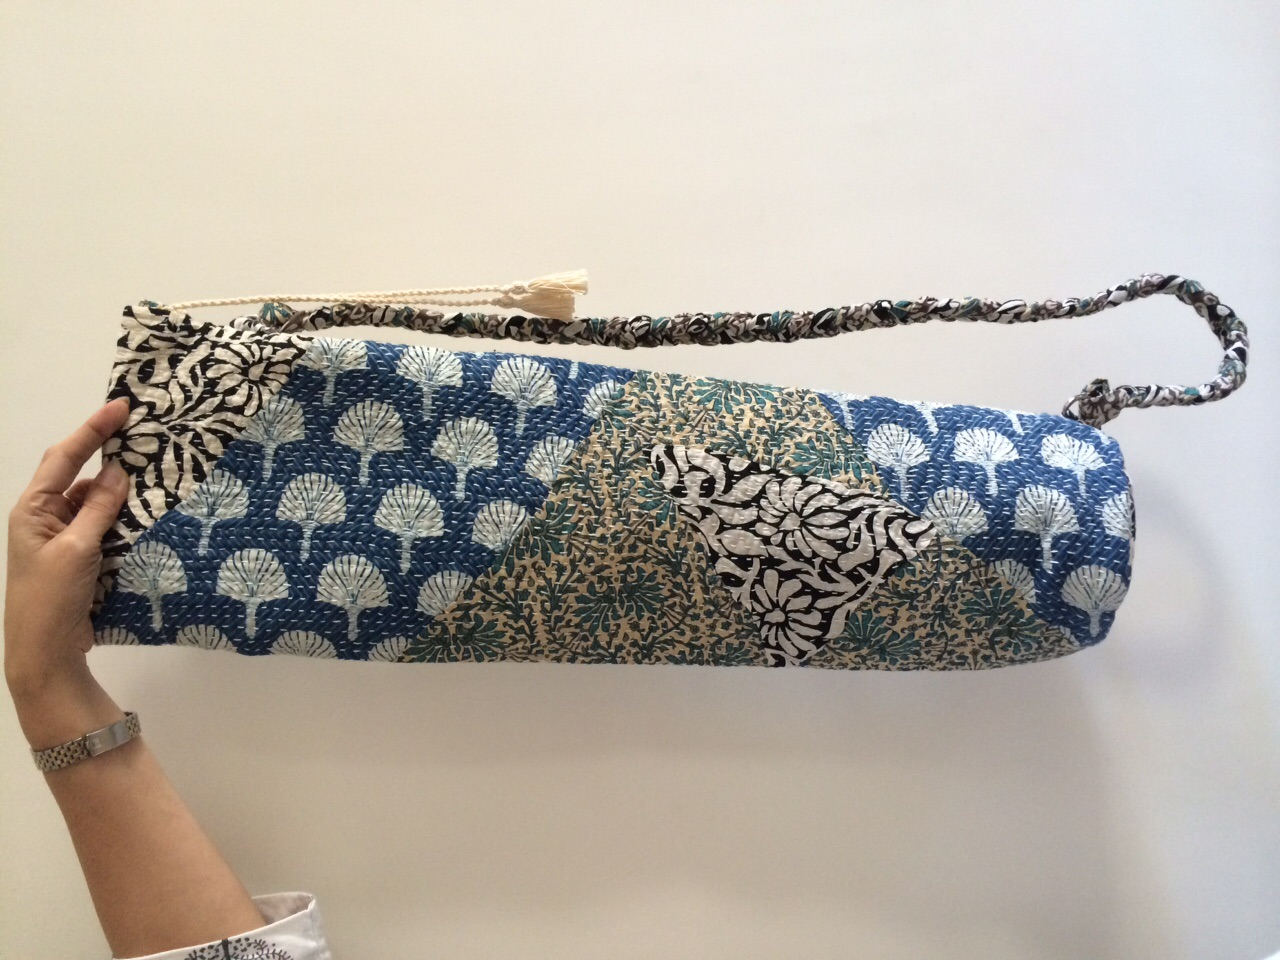 One of Arushi's patchwork yoga mat bags.